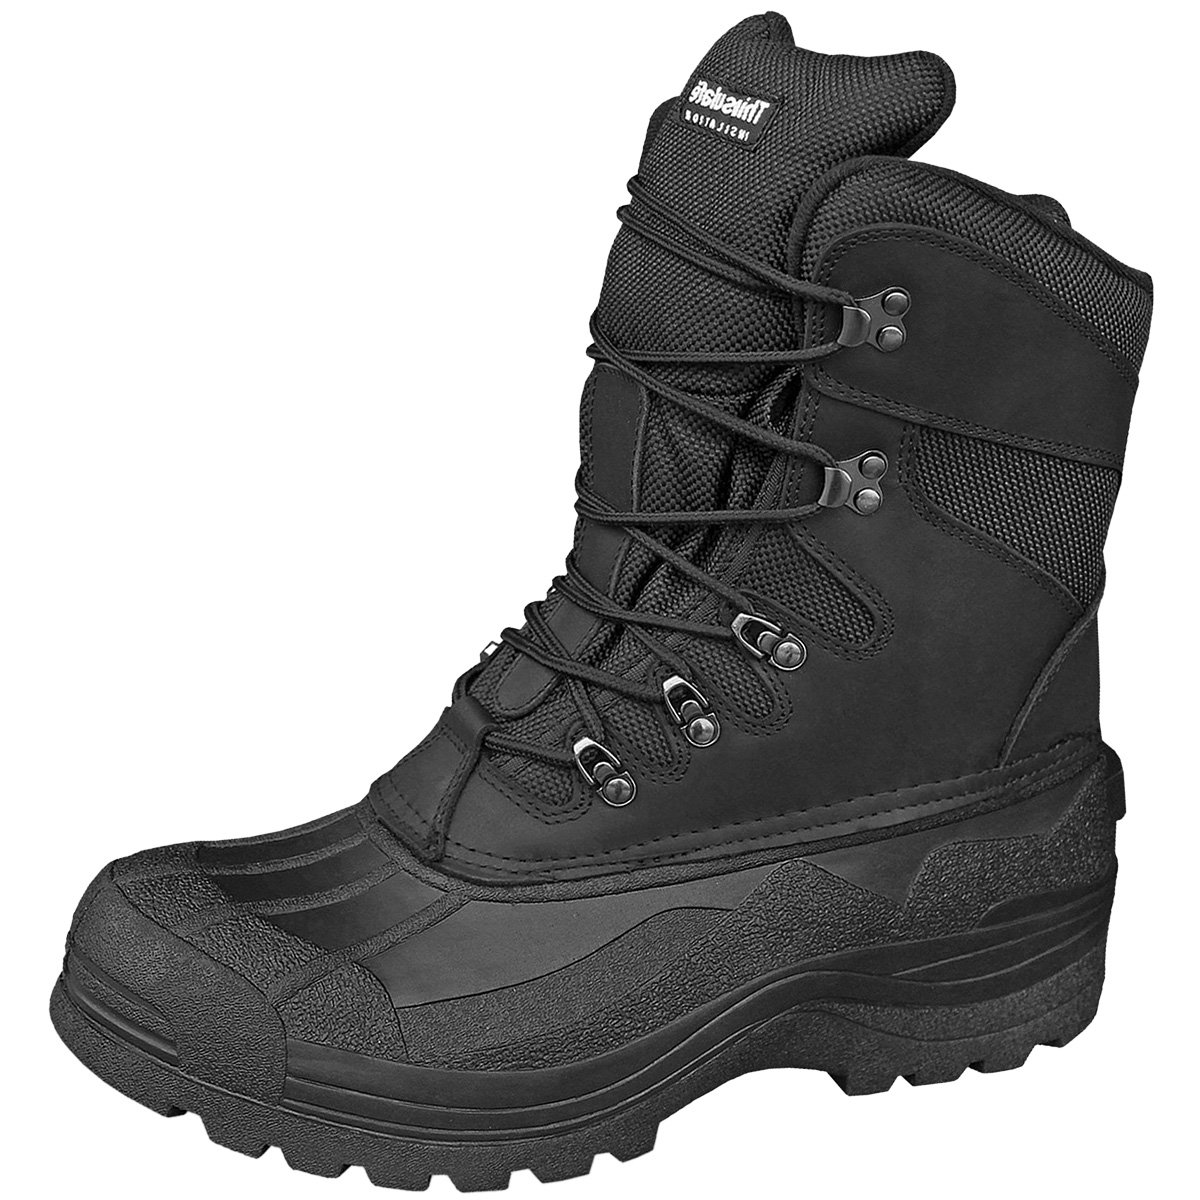 Mil-Tec Thermal Boots Black size 8